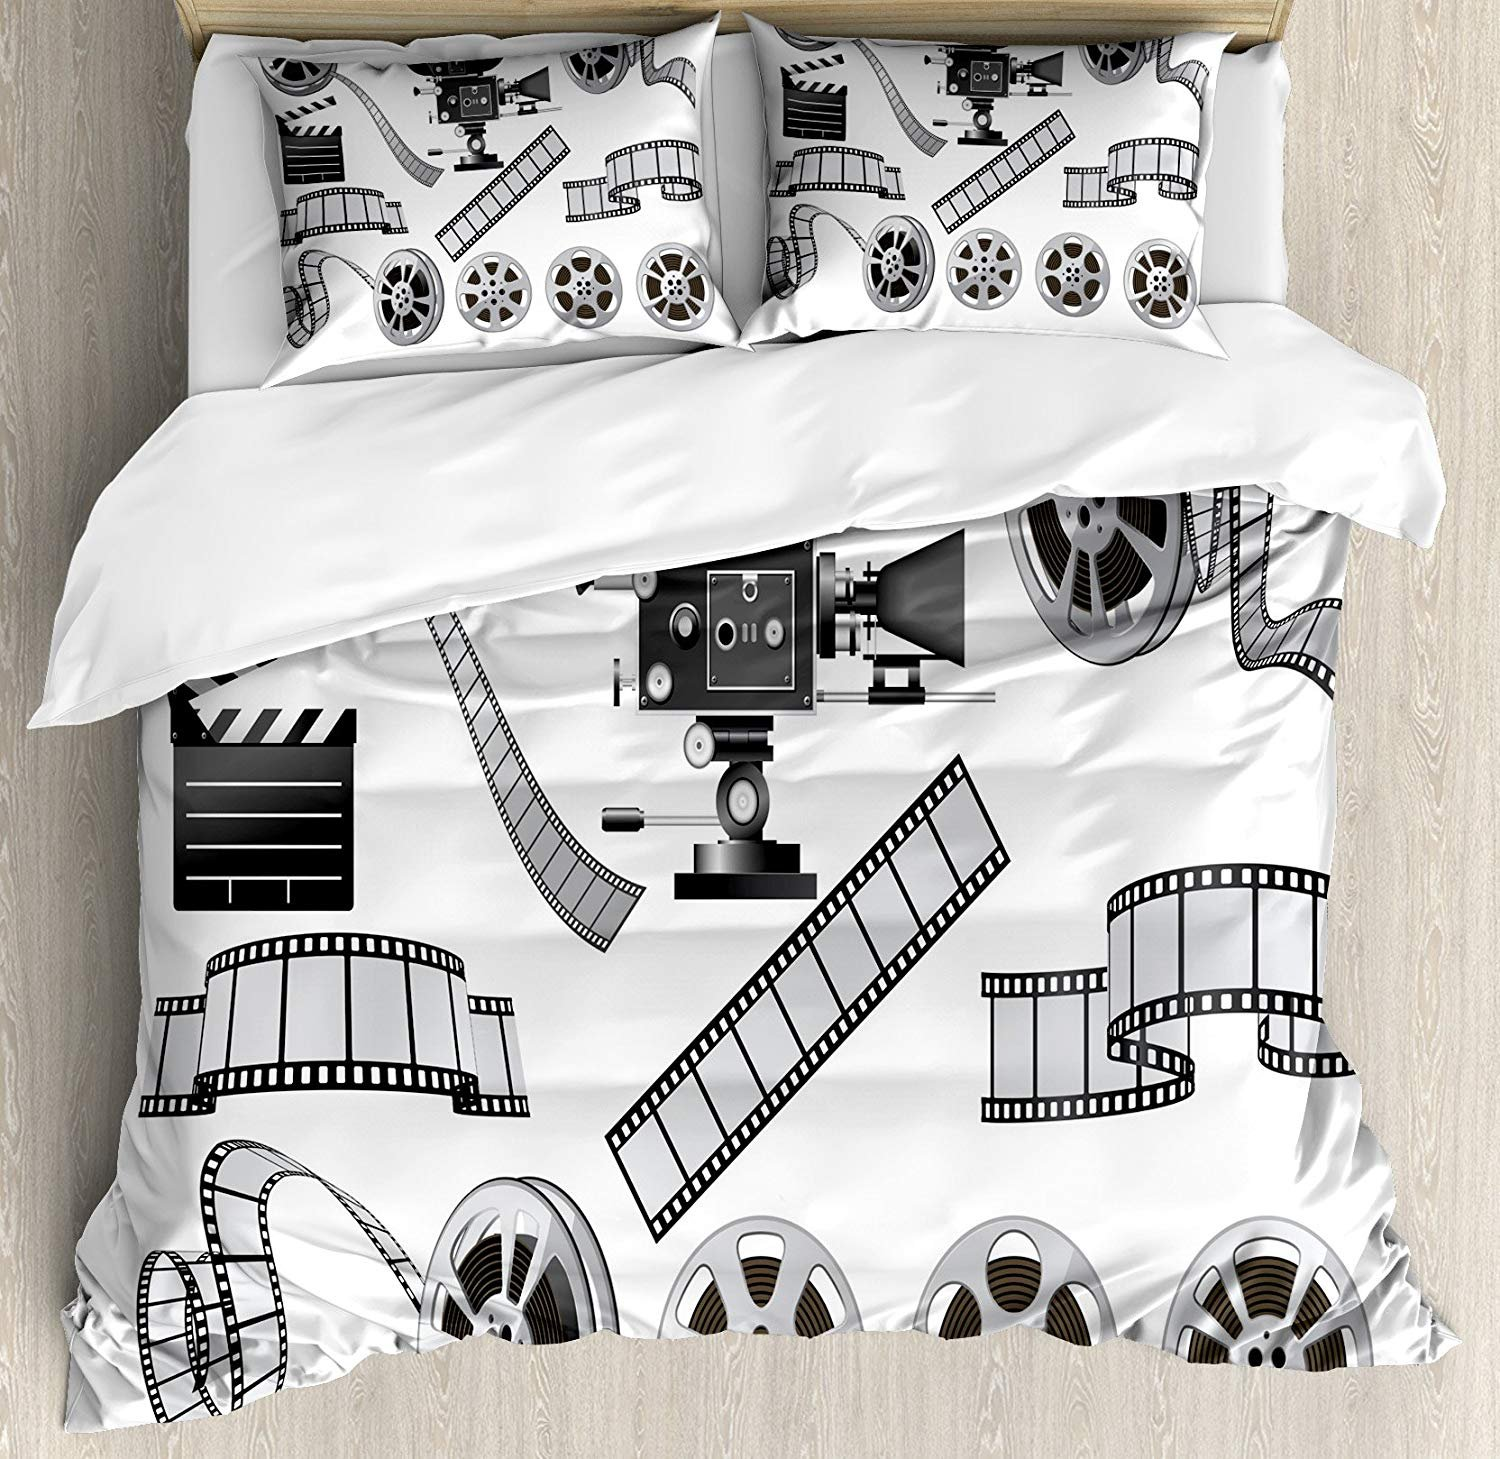 Movie Theater Bedding Sets, Movie Industry Themed Greyscale Illustration of Projector Film Slate and Reel, 4 Piece Duvet Cover Set Bedspread for Childrens/Kids/Teens/Adults, Grey Black,Twin Size